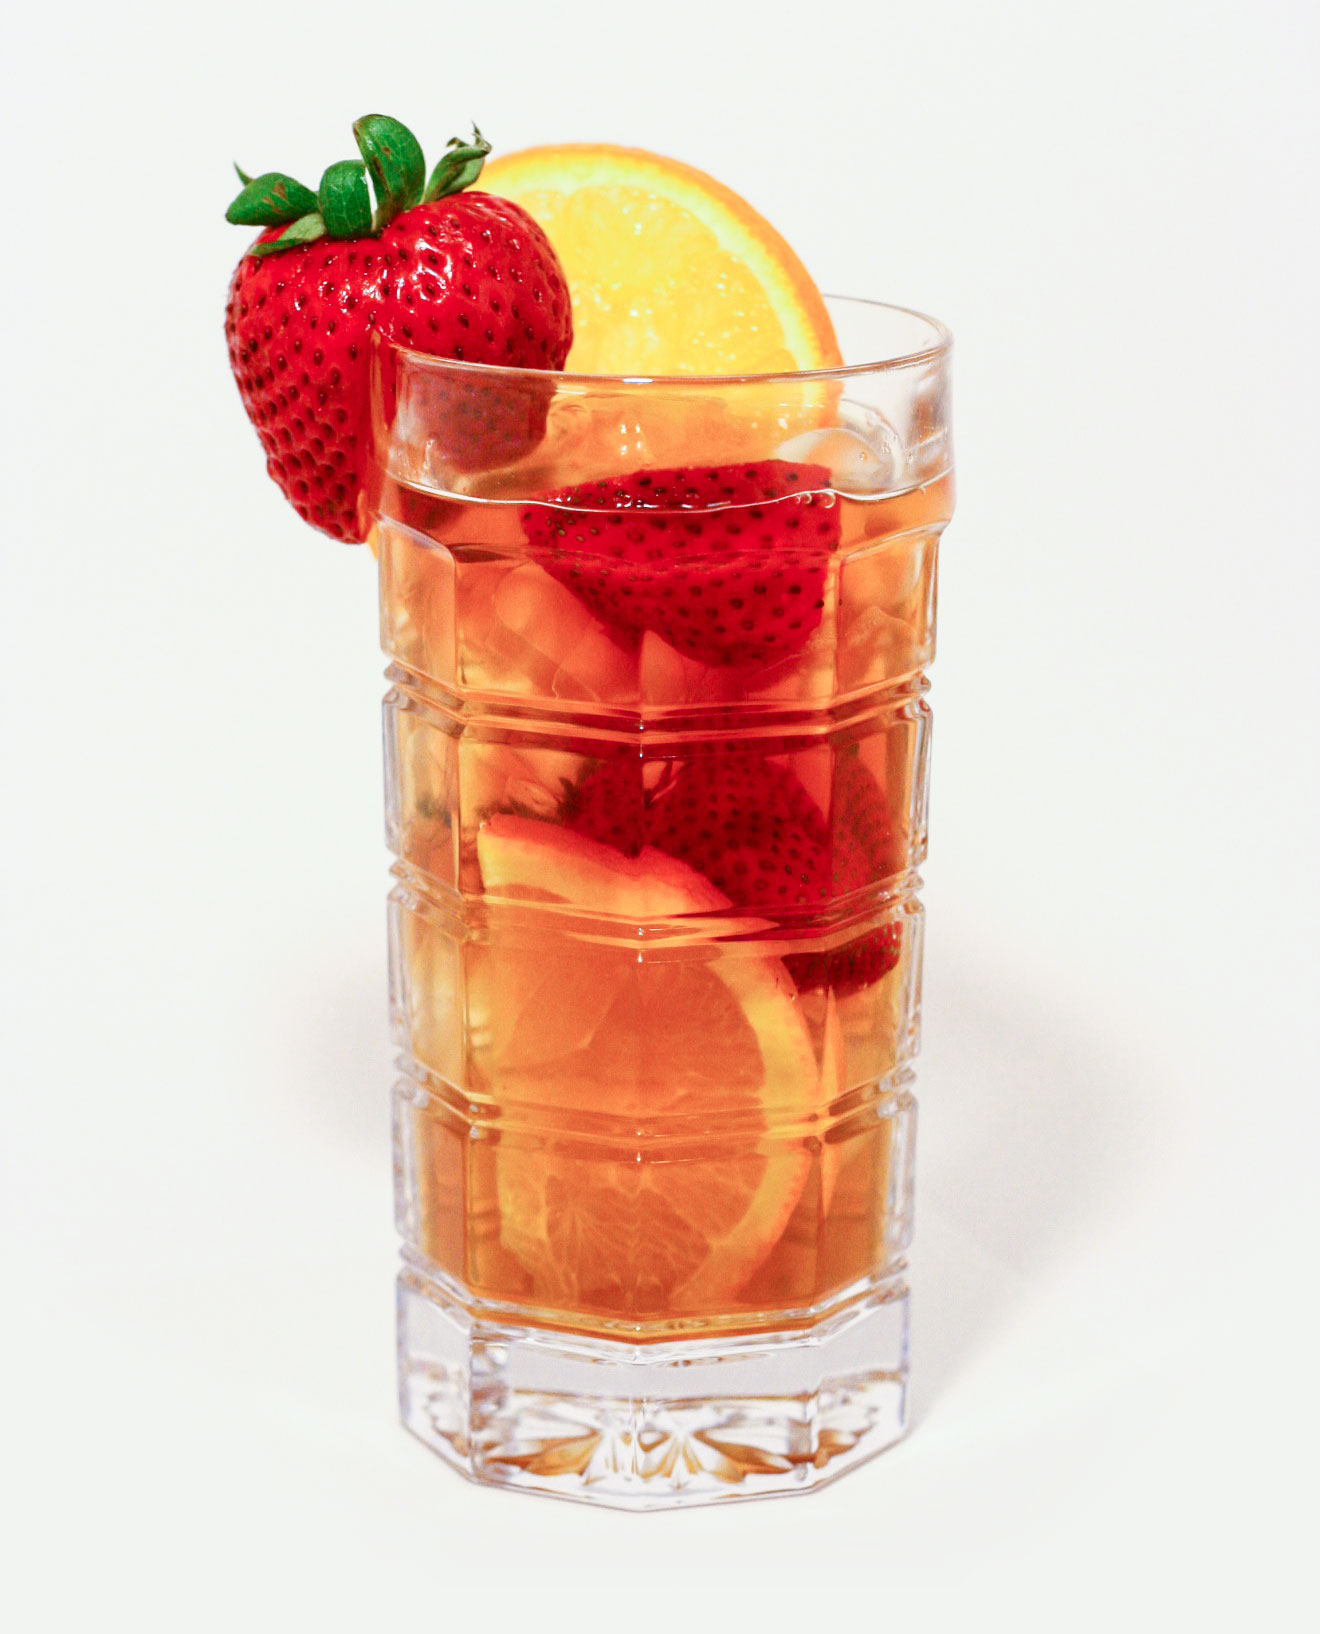 To make the Ascot iced tea - In a one quart pitcher:Measure 1/3 cup organic pure cane sugar into pitcher.Place 4 TBS. Ascot tea in filter, place in pitcher.Fill with boiling water; Steep 5 minutes.Remove tea in filter, and stir in sugar.Chill, or pour over ice.